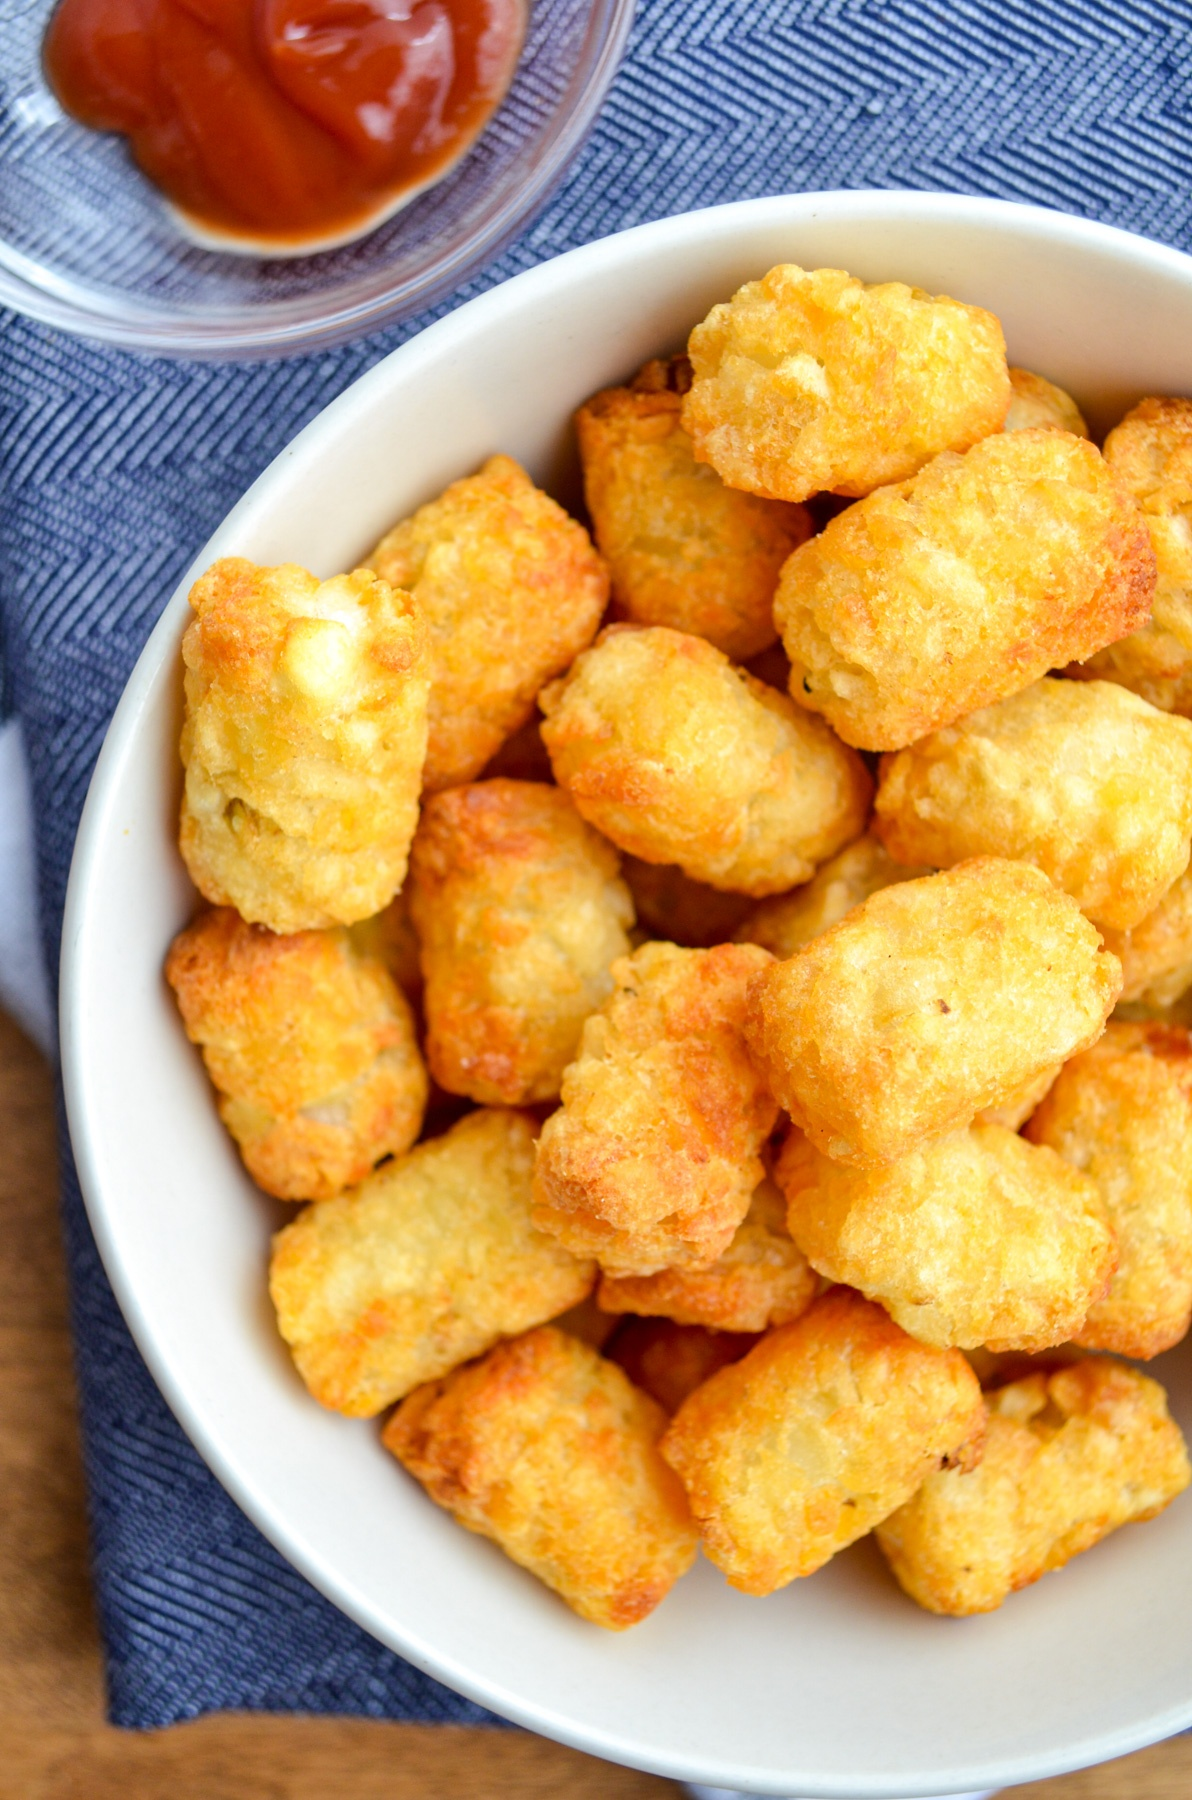 A bowl of tater tots, with a serving of ketchup on the side.